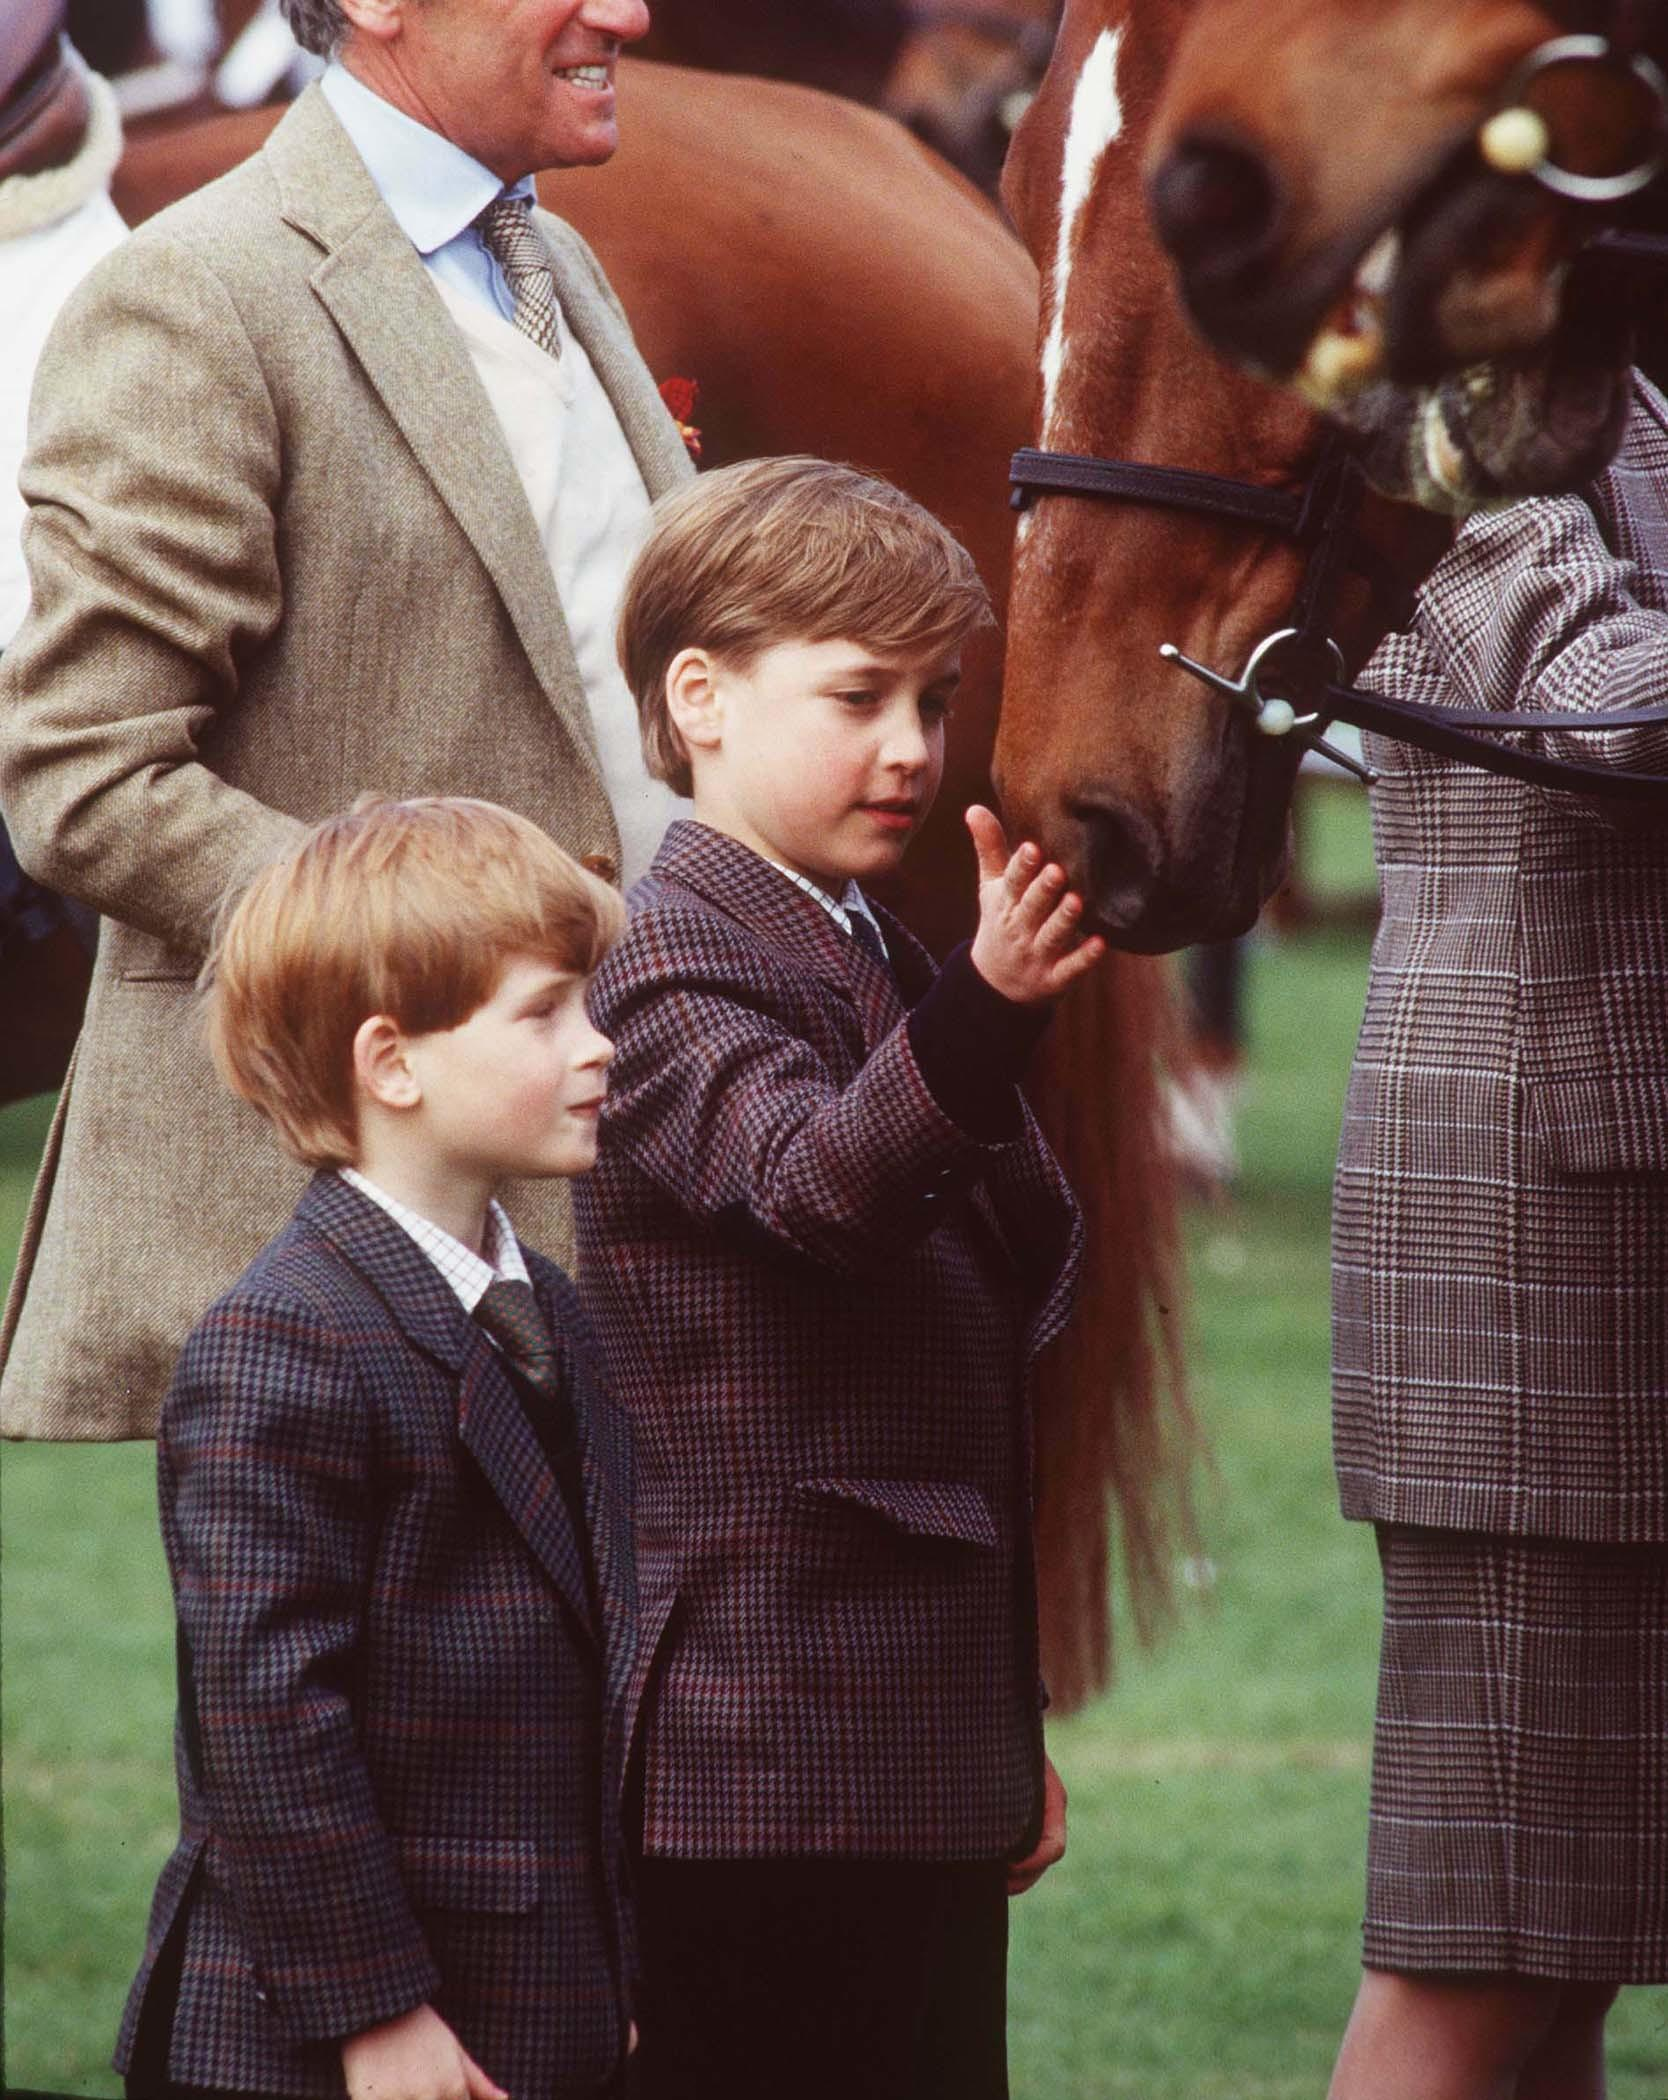 BADMINTON - MAY: (FILE PHOTO) Prince William and Prince Harry pat a horse when the visit the Badminton Horse Trials in May, 1991 in Badminton, England.  (Photo by Anwar Hussein/Getty Images)